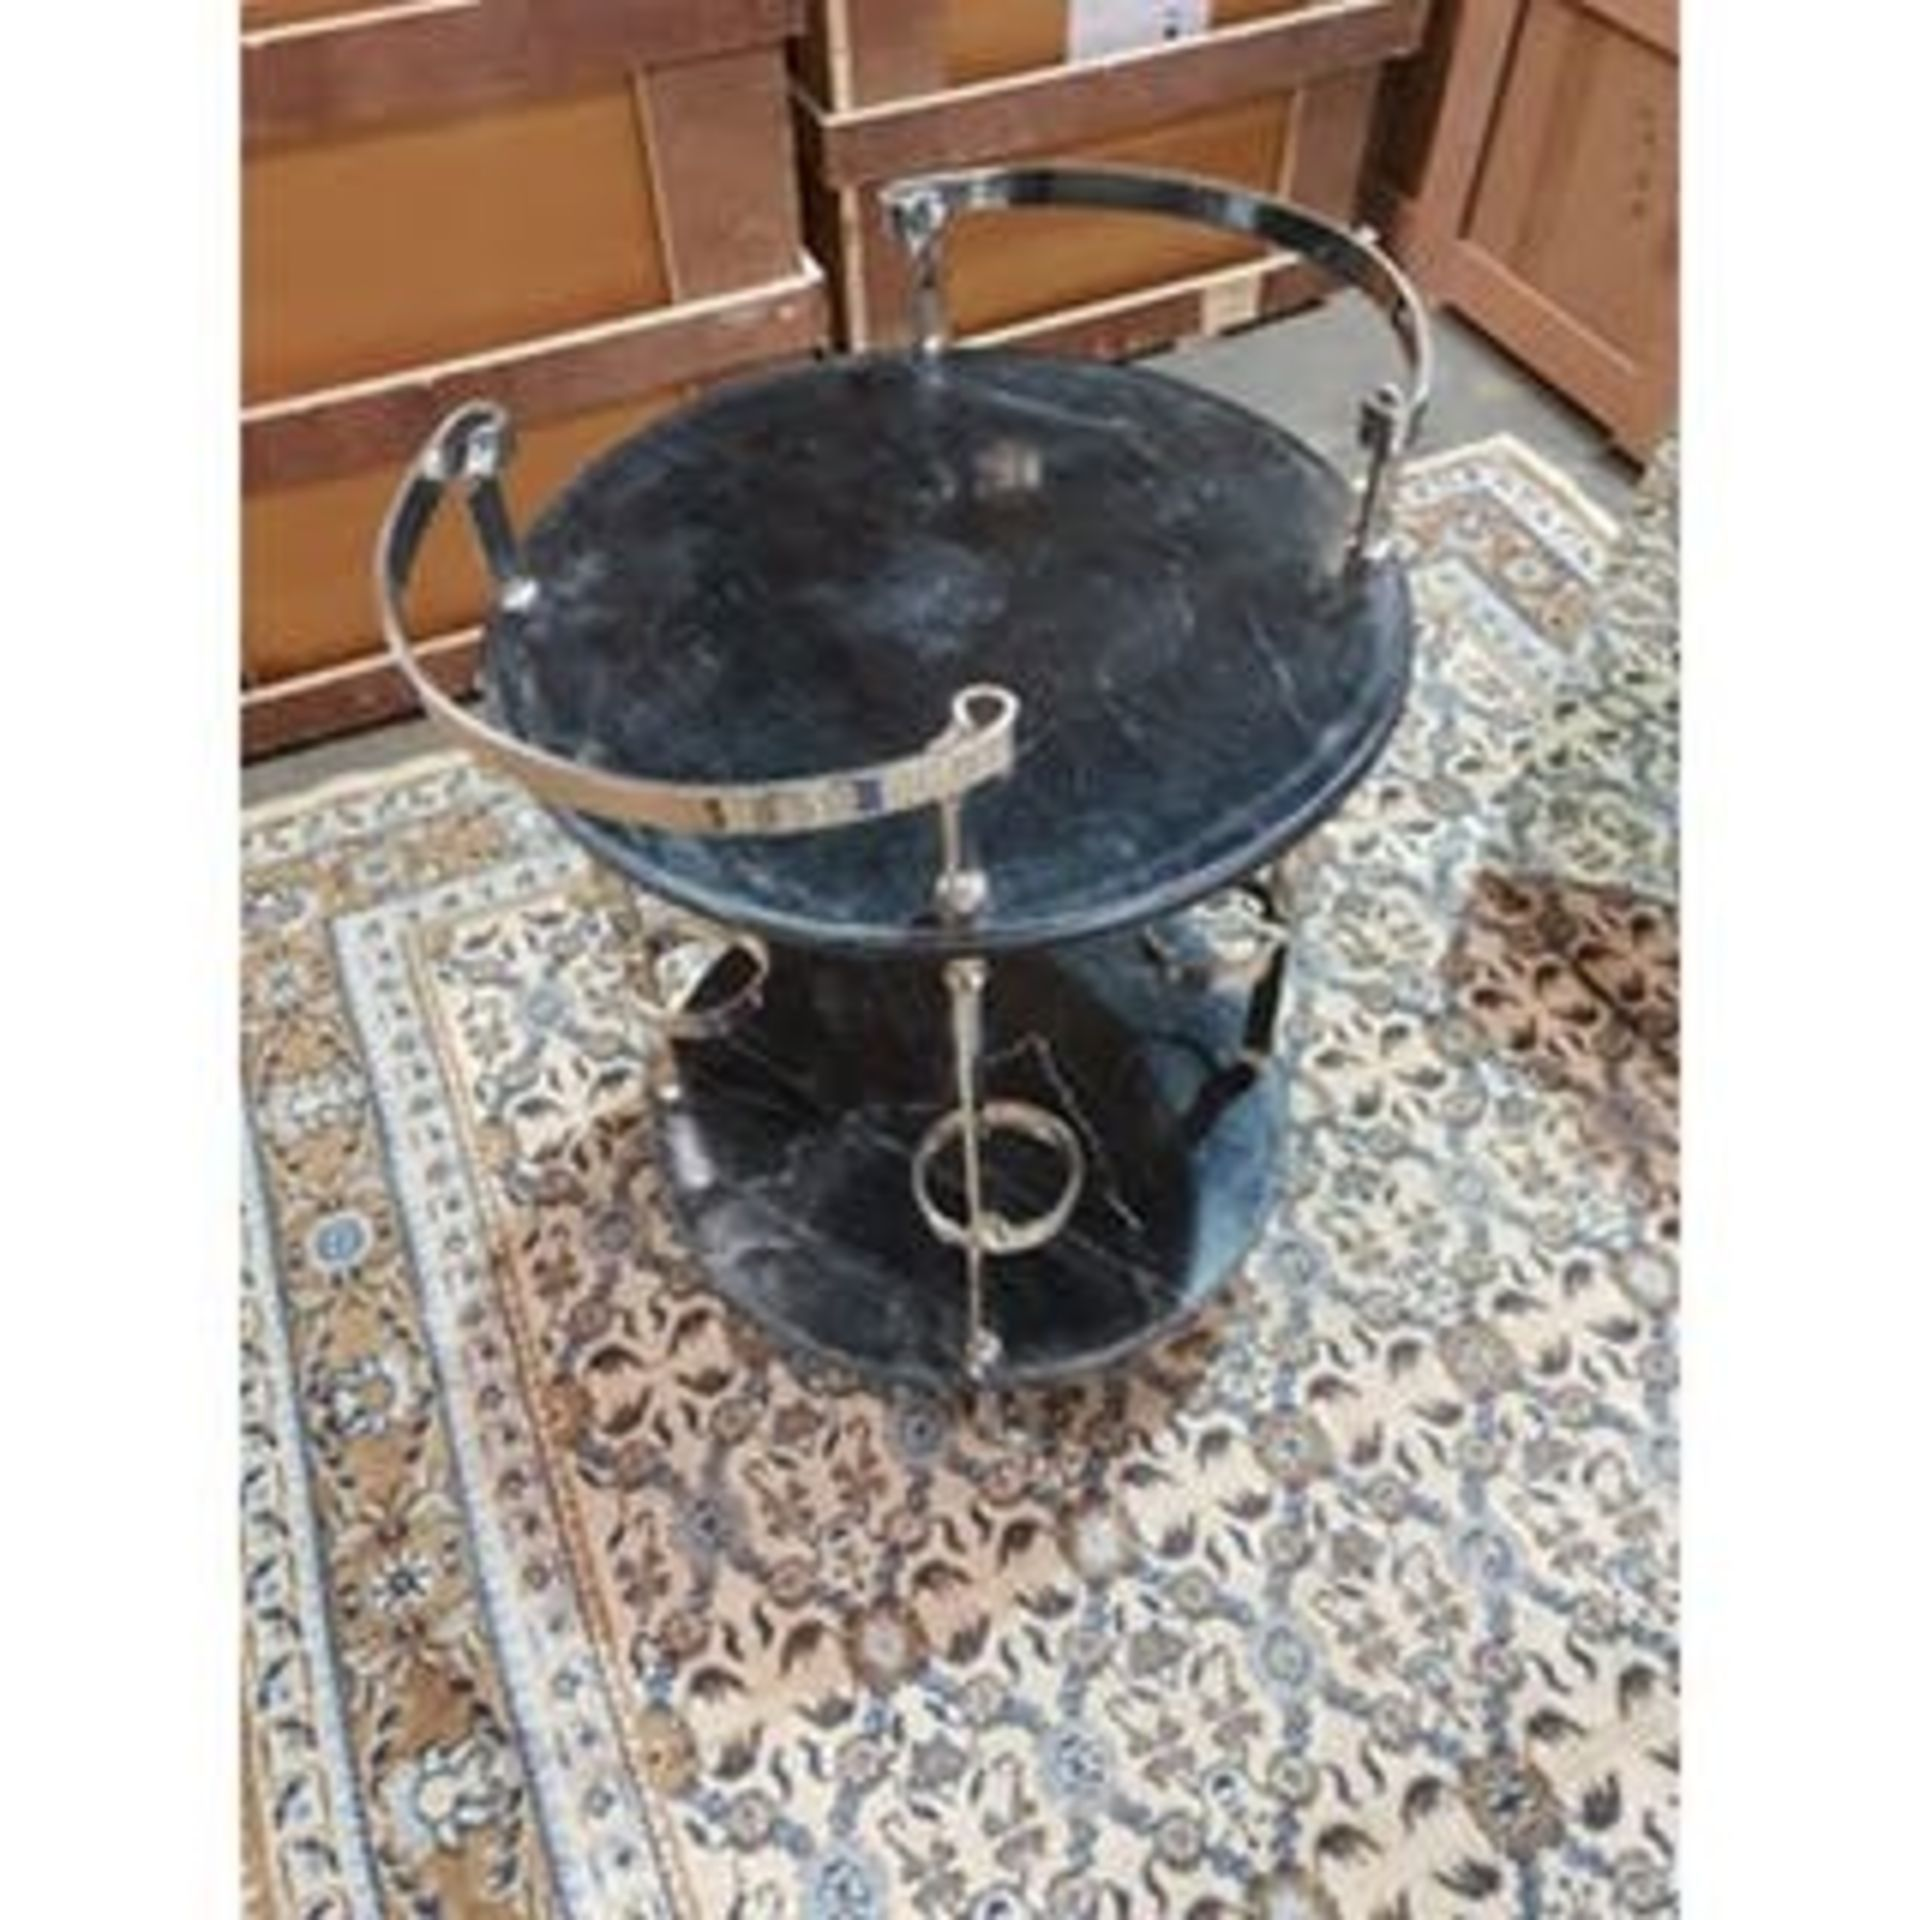 Timothy Oulton Deco Bar Cart Black Marble-Top and Nickel Bar Cart This Luxe, Marble-Topped Bar